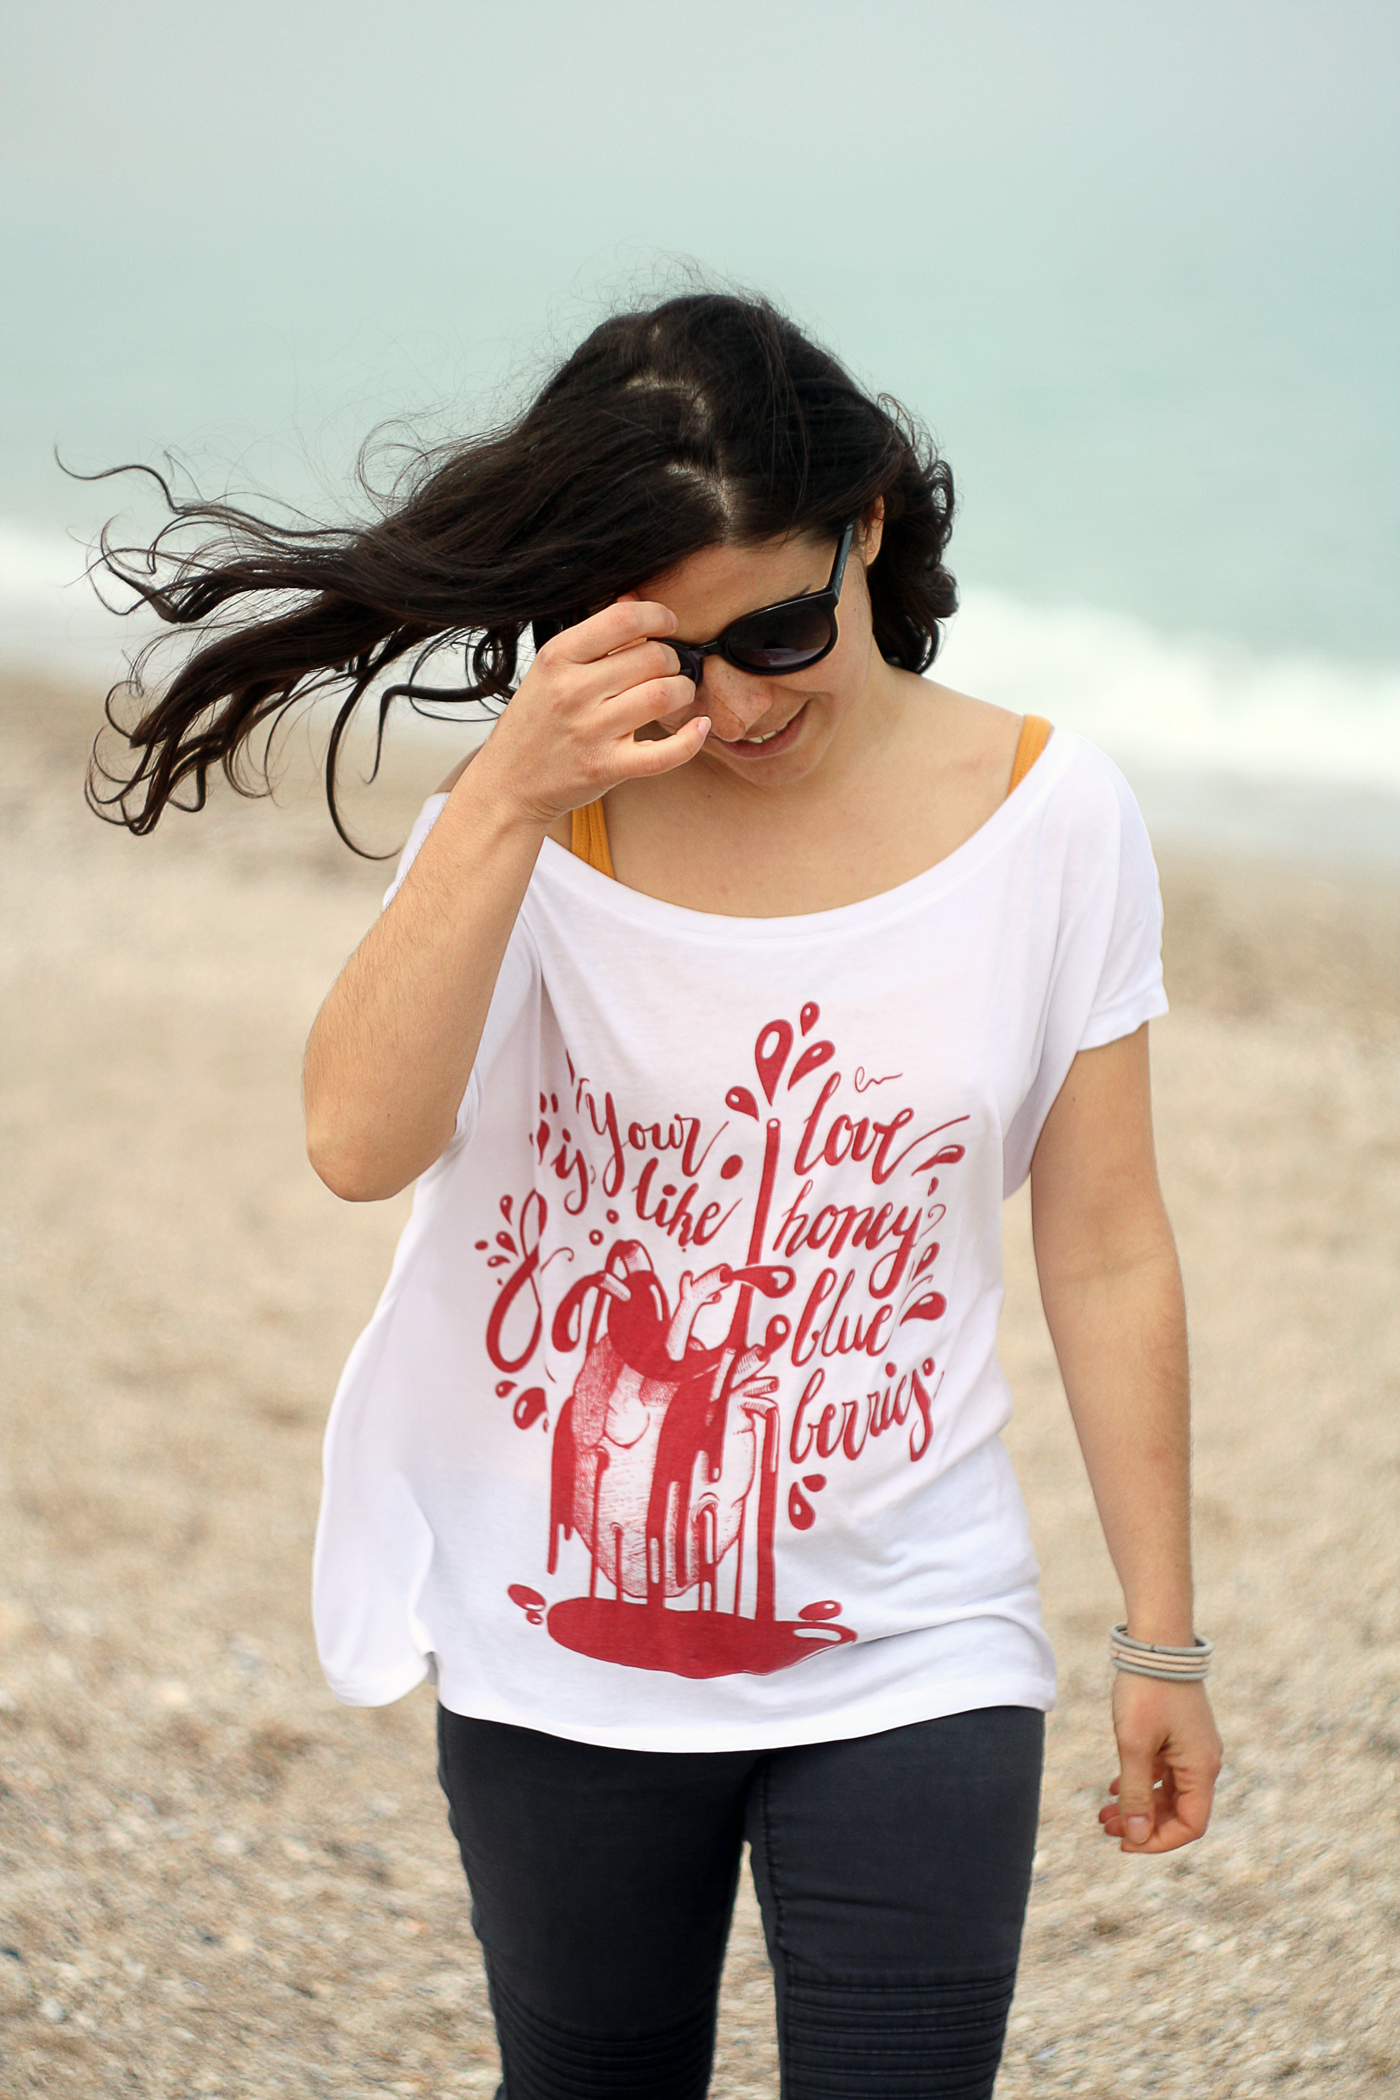 Tshirt of Raluca Mitarca's Heart on a girl on the windy beach